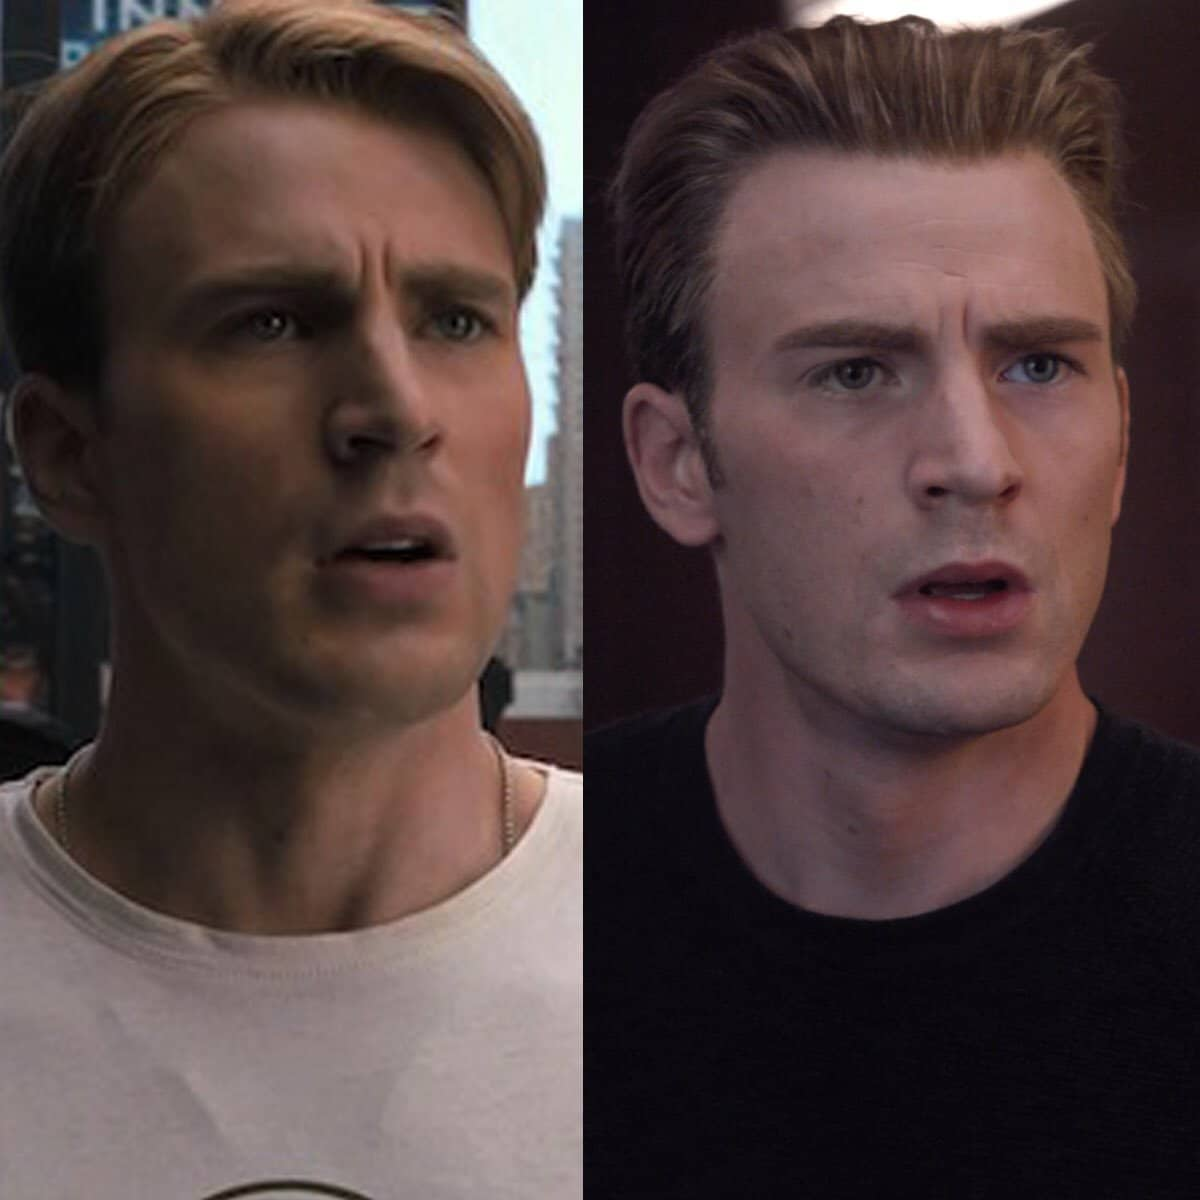 marvel-cinematic-unvierse-10-year-challenge-captain-america-1154291